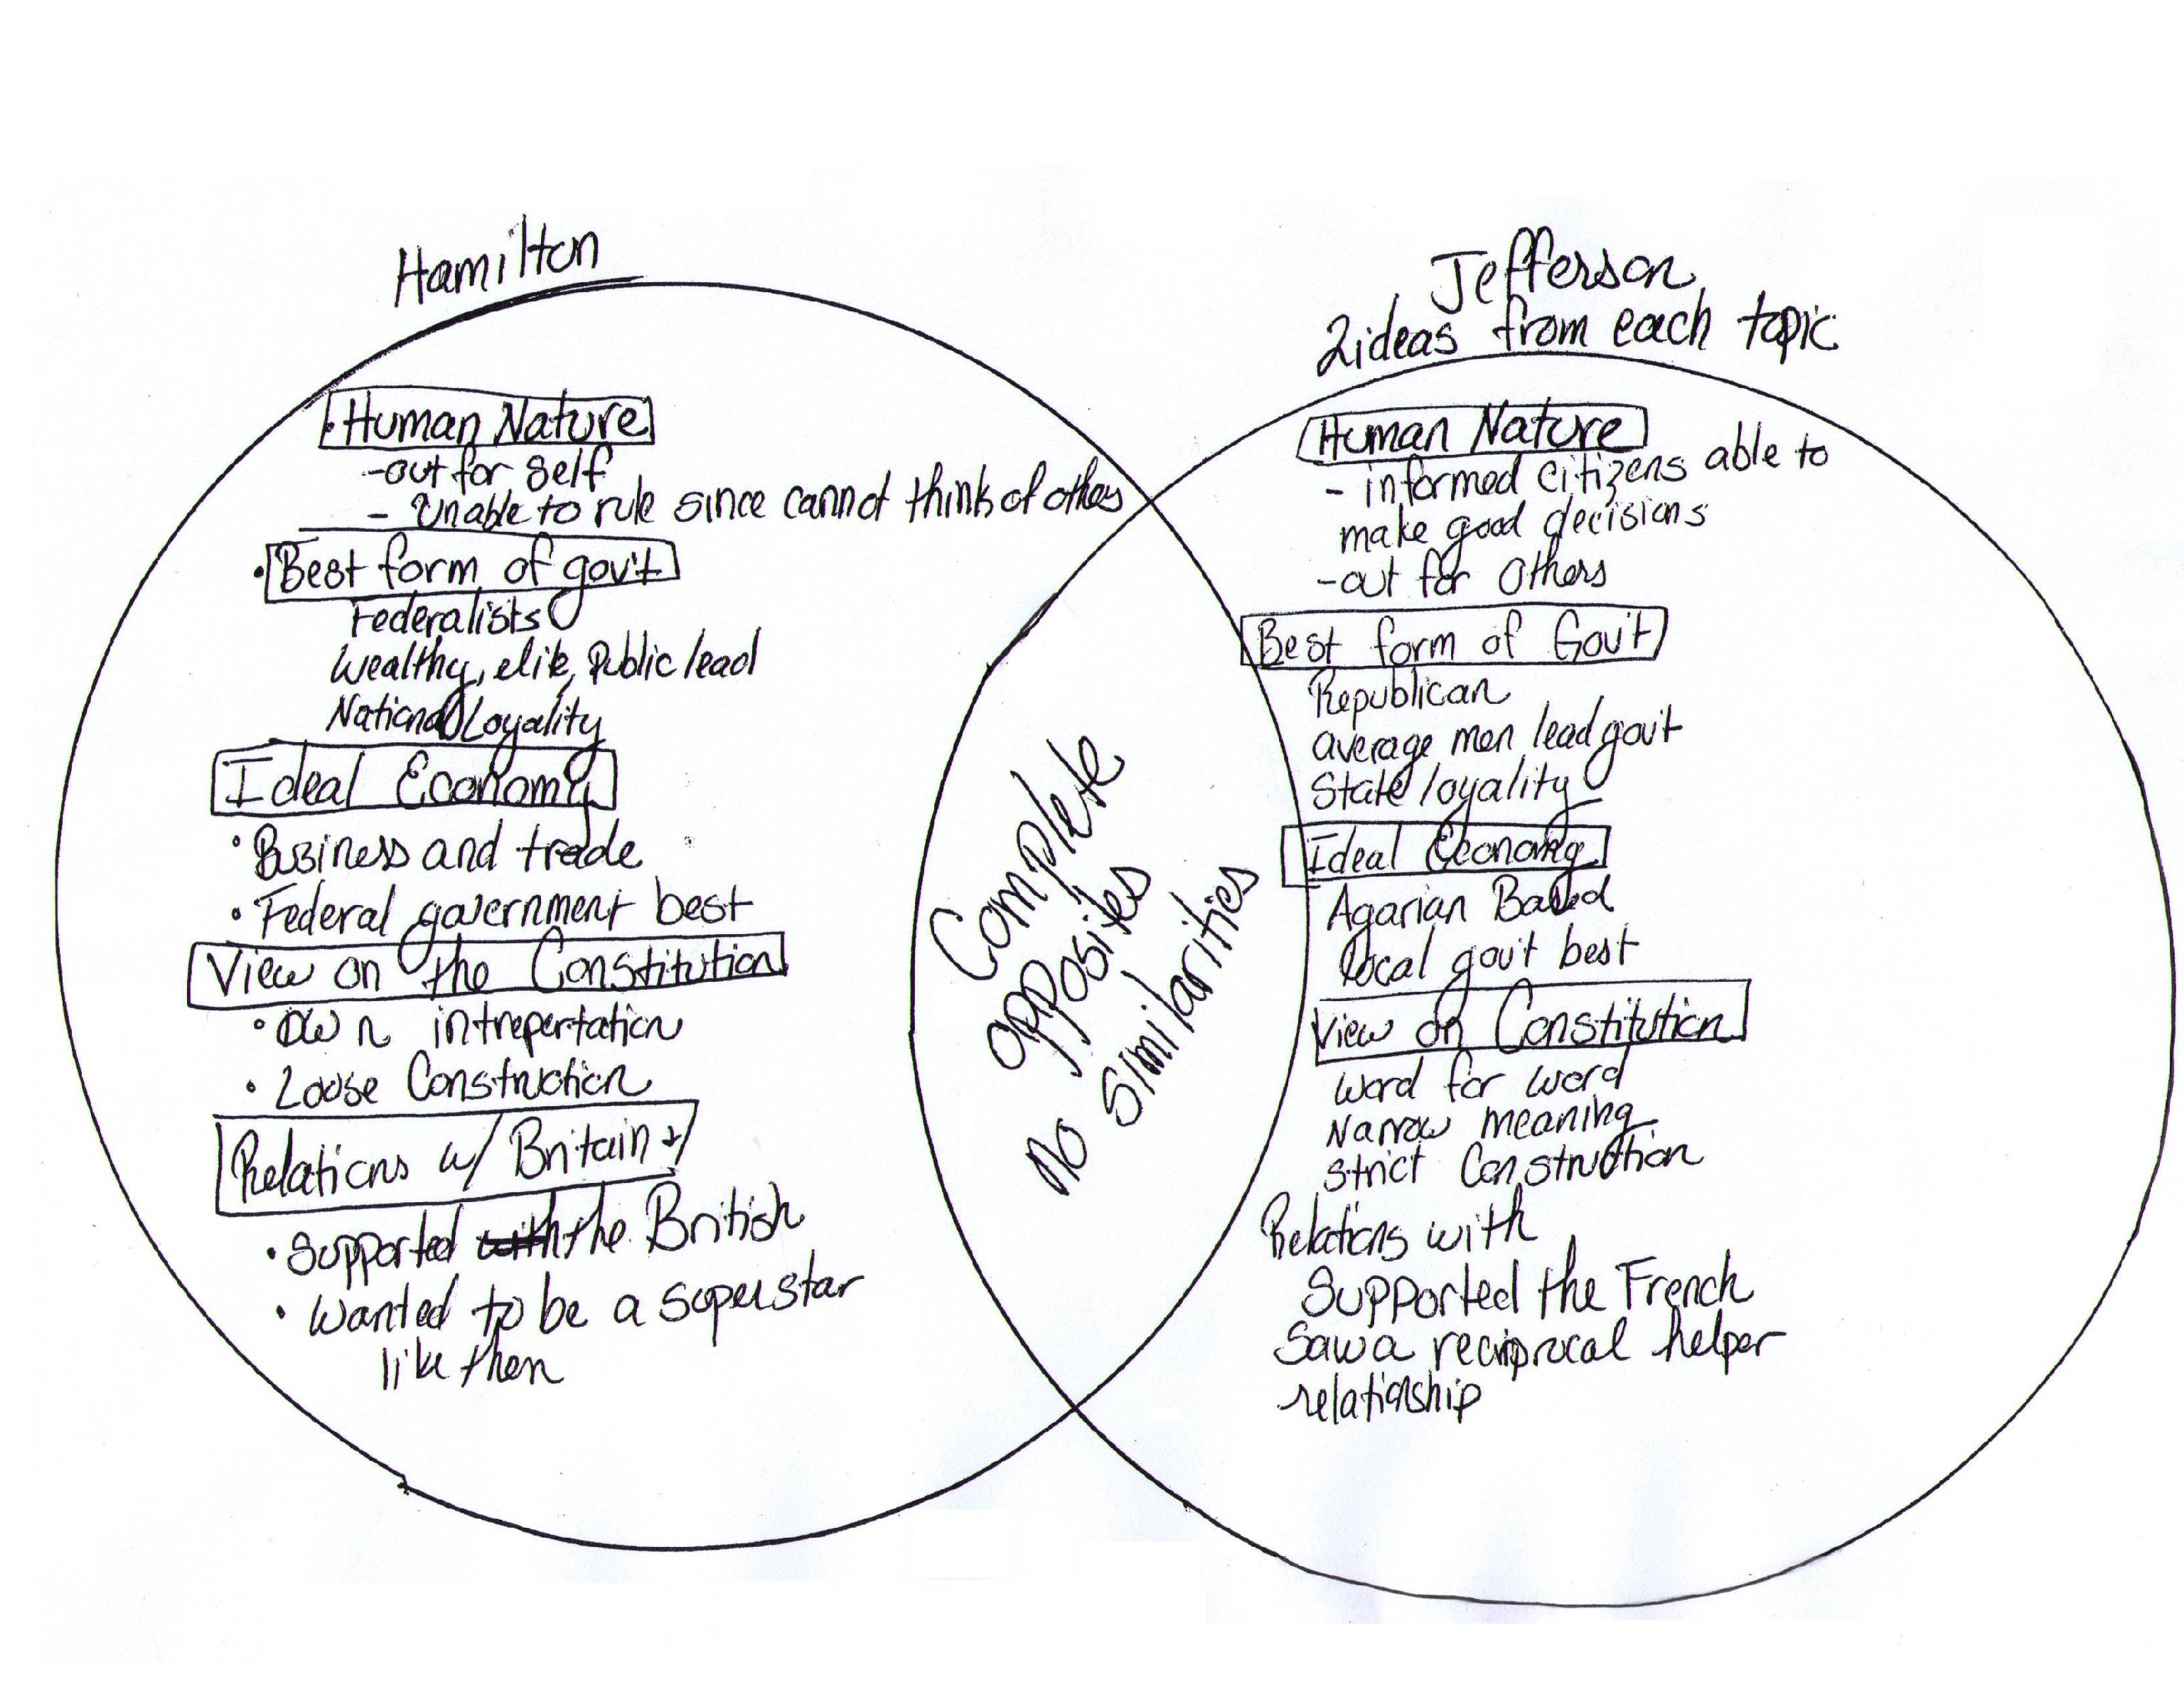 Teaching american history for all mdusducb h ssp 8th grade lesson directions create a venn diagram to compare and contrast the ideas of hamilton and jefferson ccuart Image collections